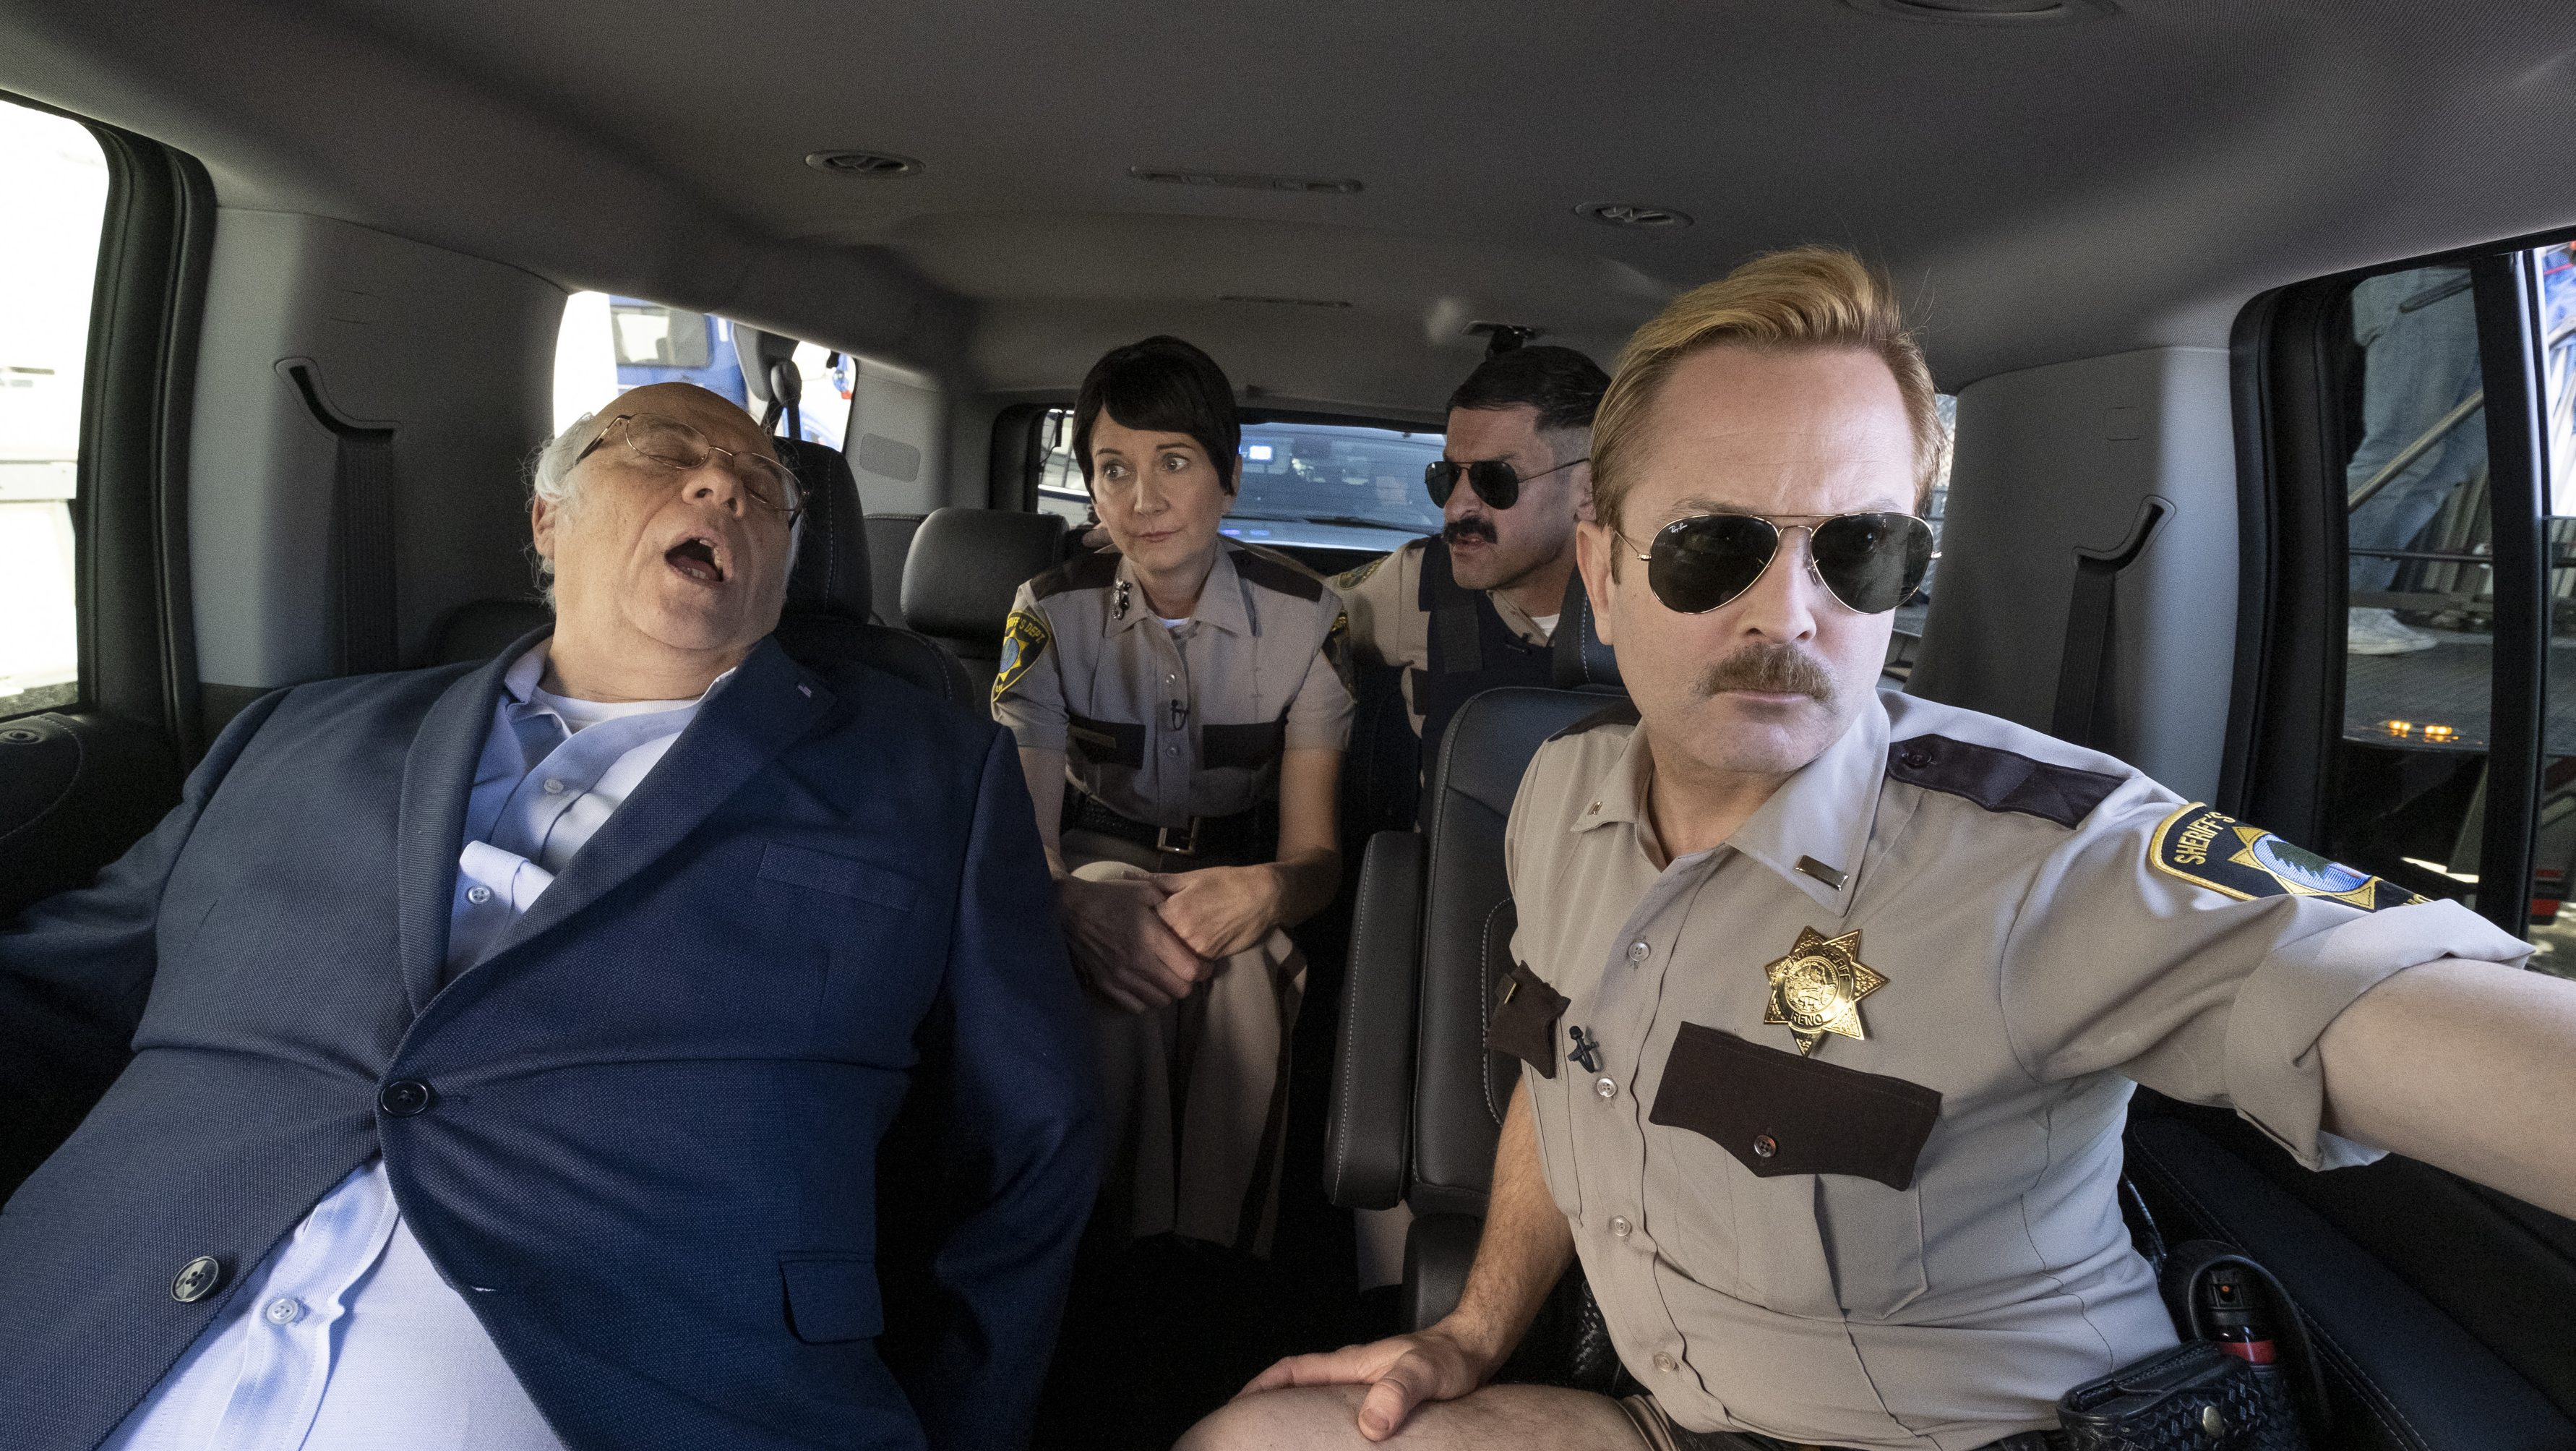 Reno 911 S Thomas Lennon On Plans For More Seasons Of Quibi Revival Deadline